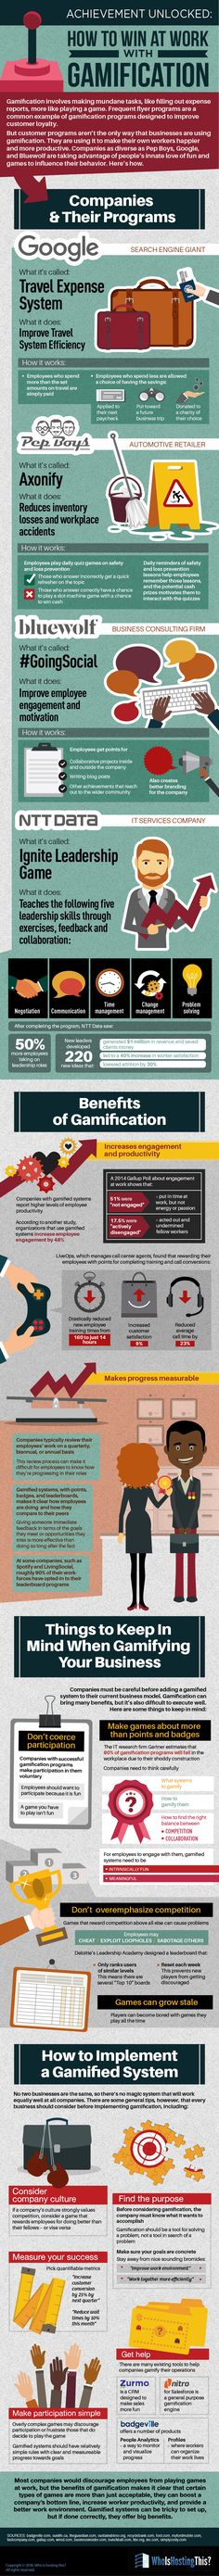 Gamification: How to Win at Work #infographic #Business #EmployeeBenefits